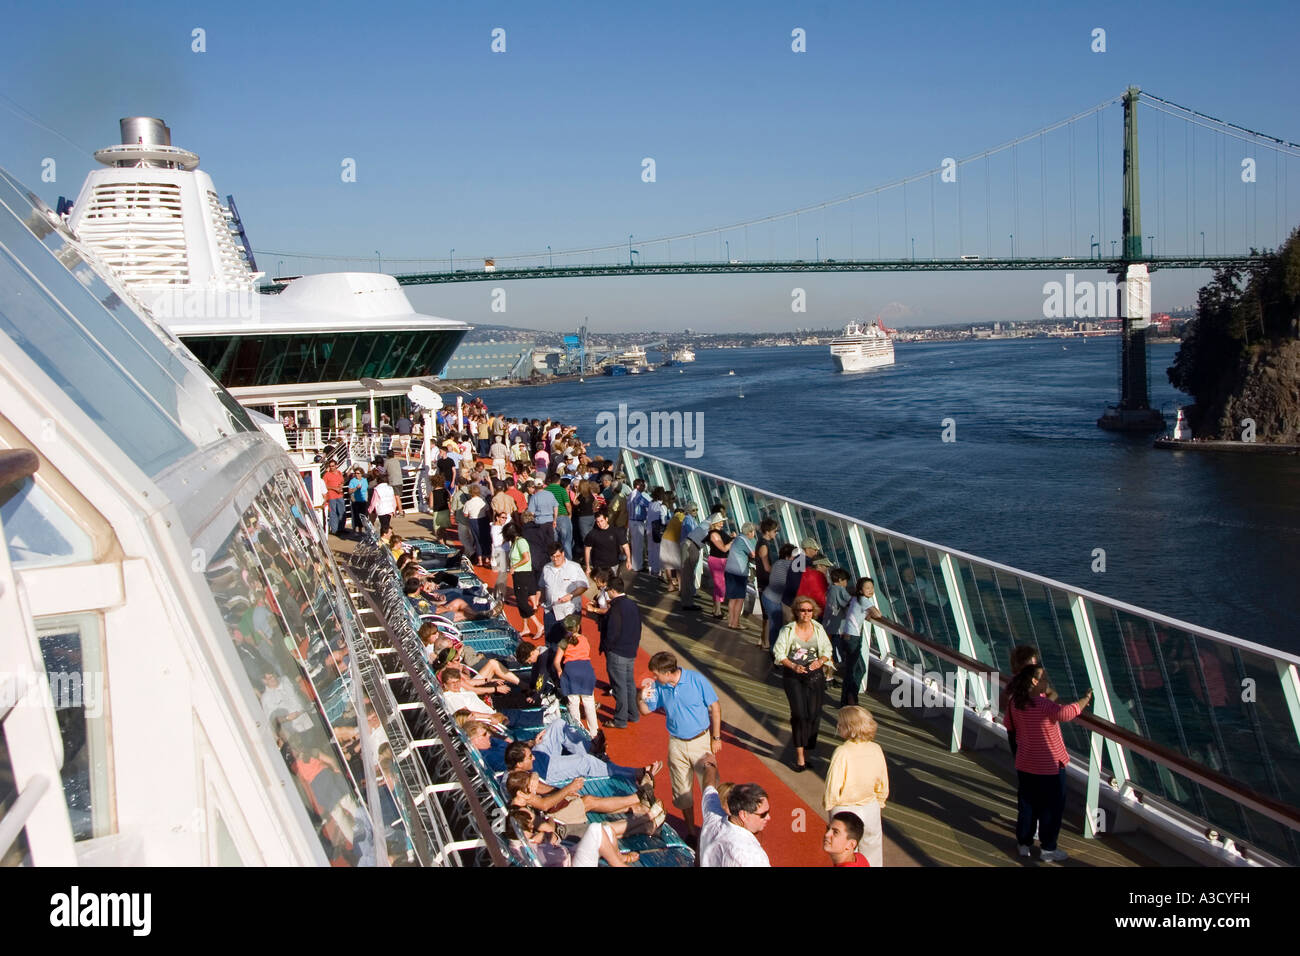 Cruise ship are leaving Vancouver under the Stanley Bridge for Alaska Cruise leaving Vancouver B.C. Canada - Stock Image